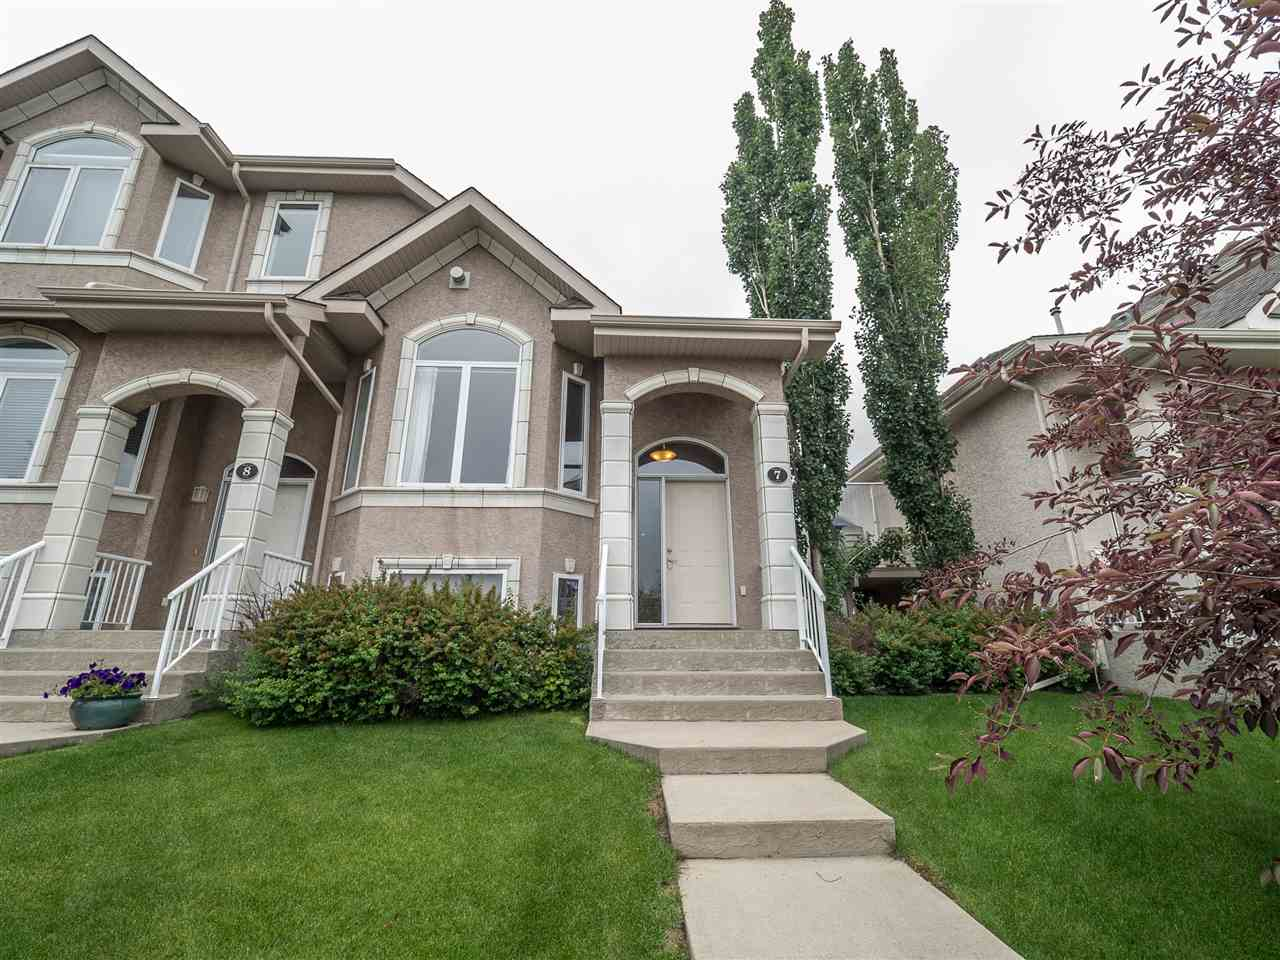 MLS® listing #E4166974 for sale located at 7 101 JIM COMMON Drive